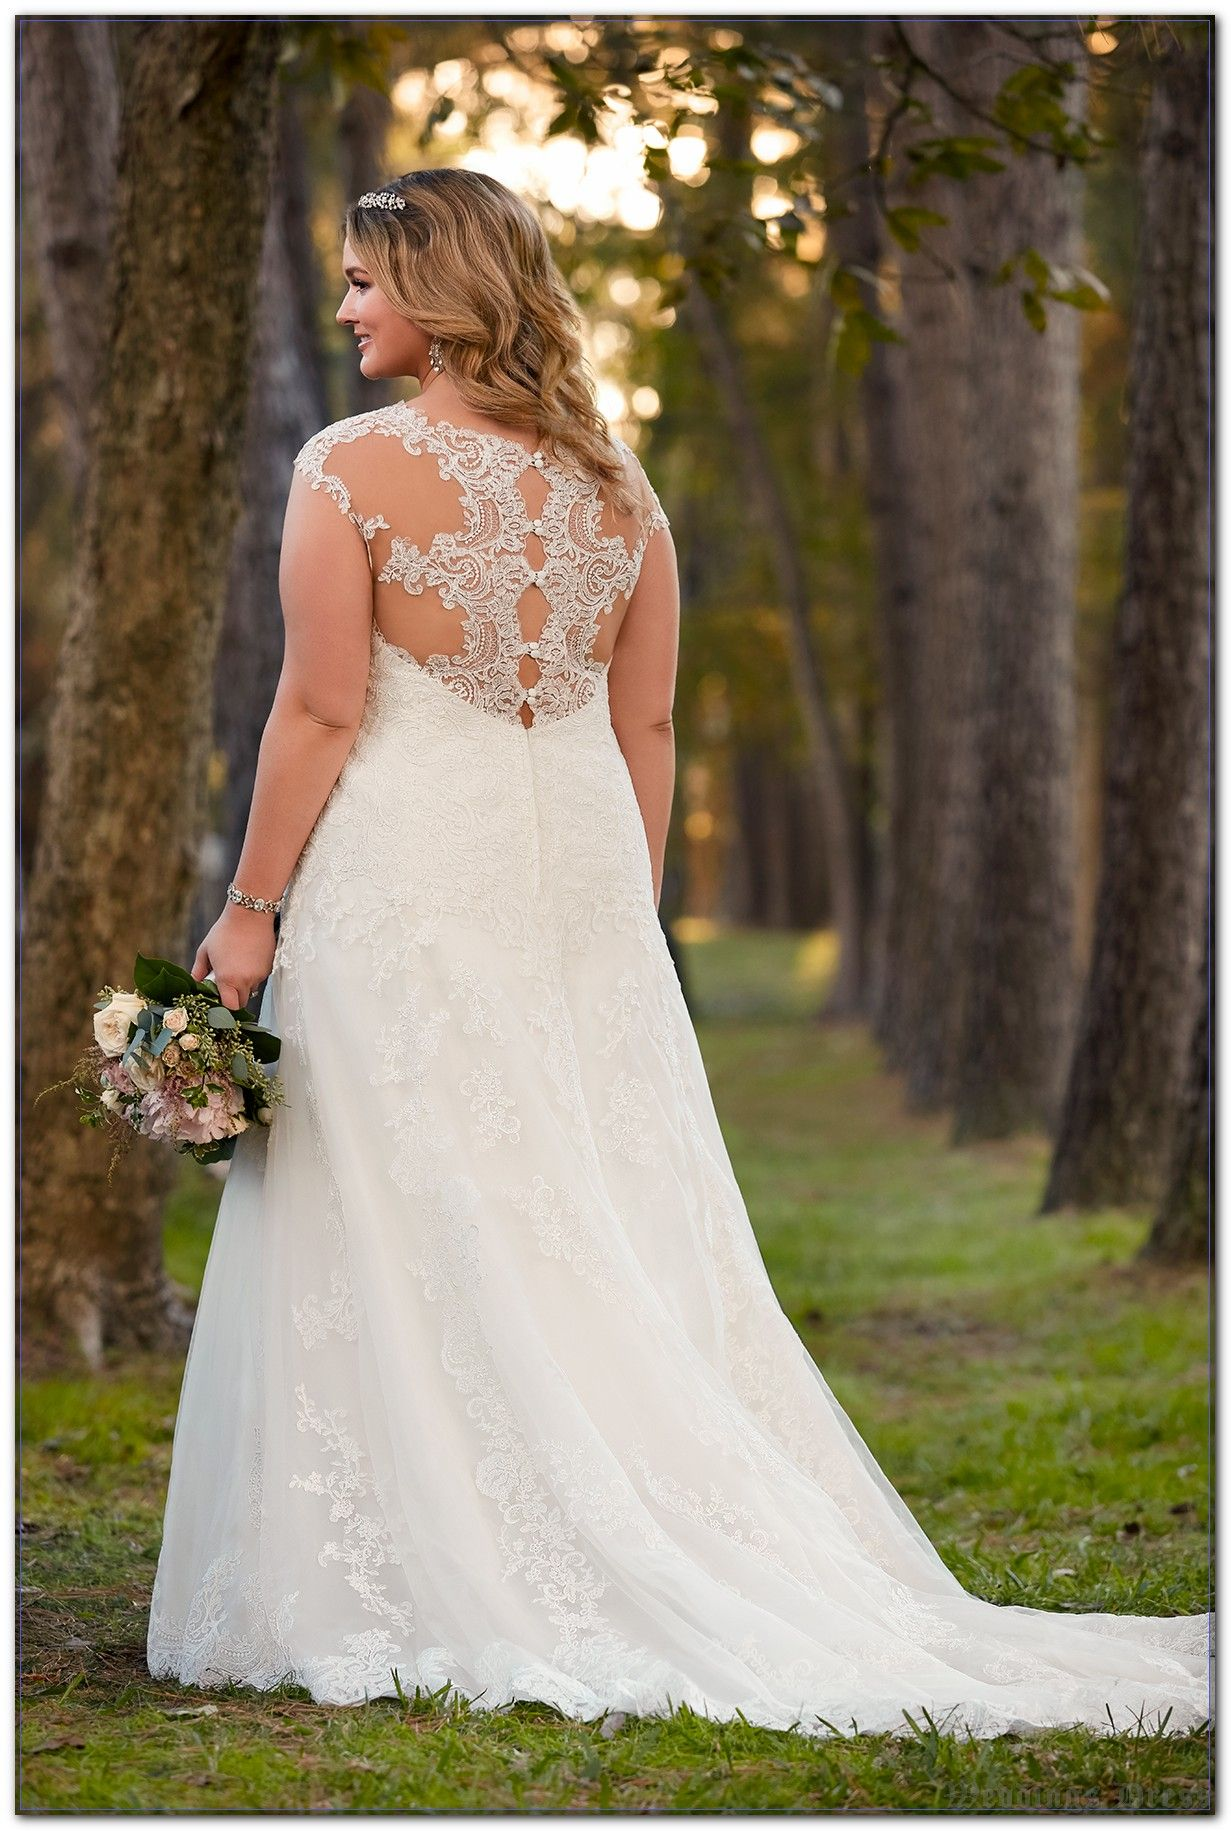 The Ultimate Guide To Weddings Dress